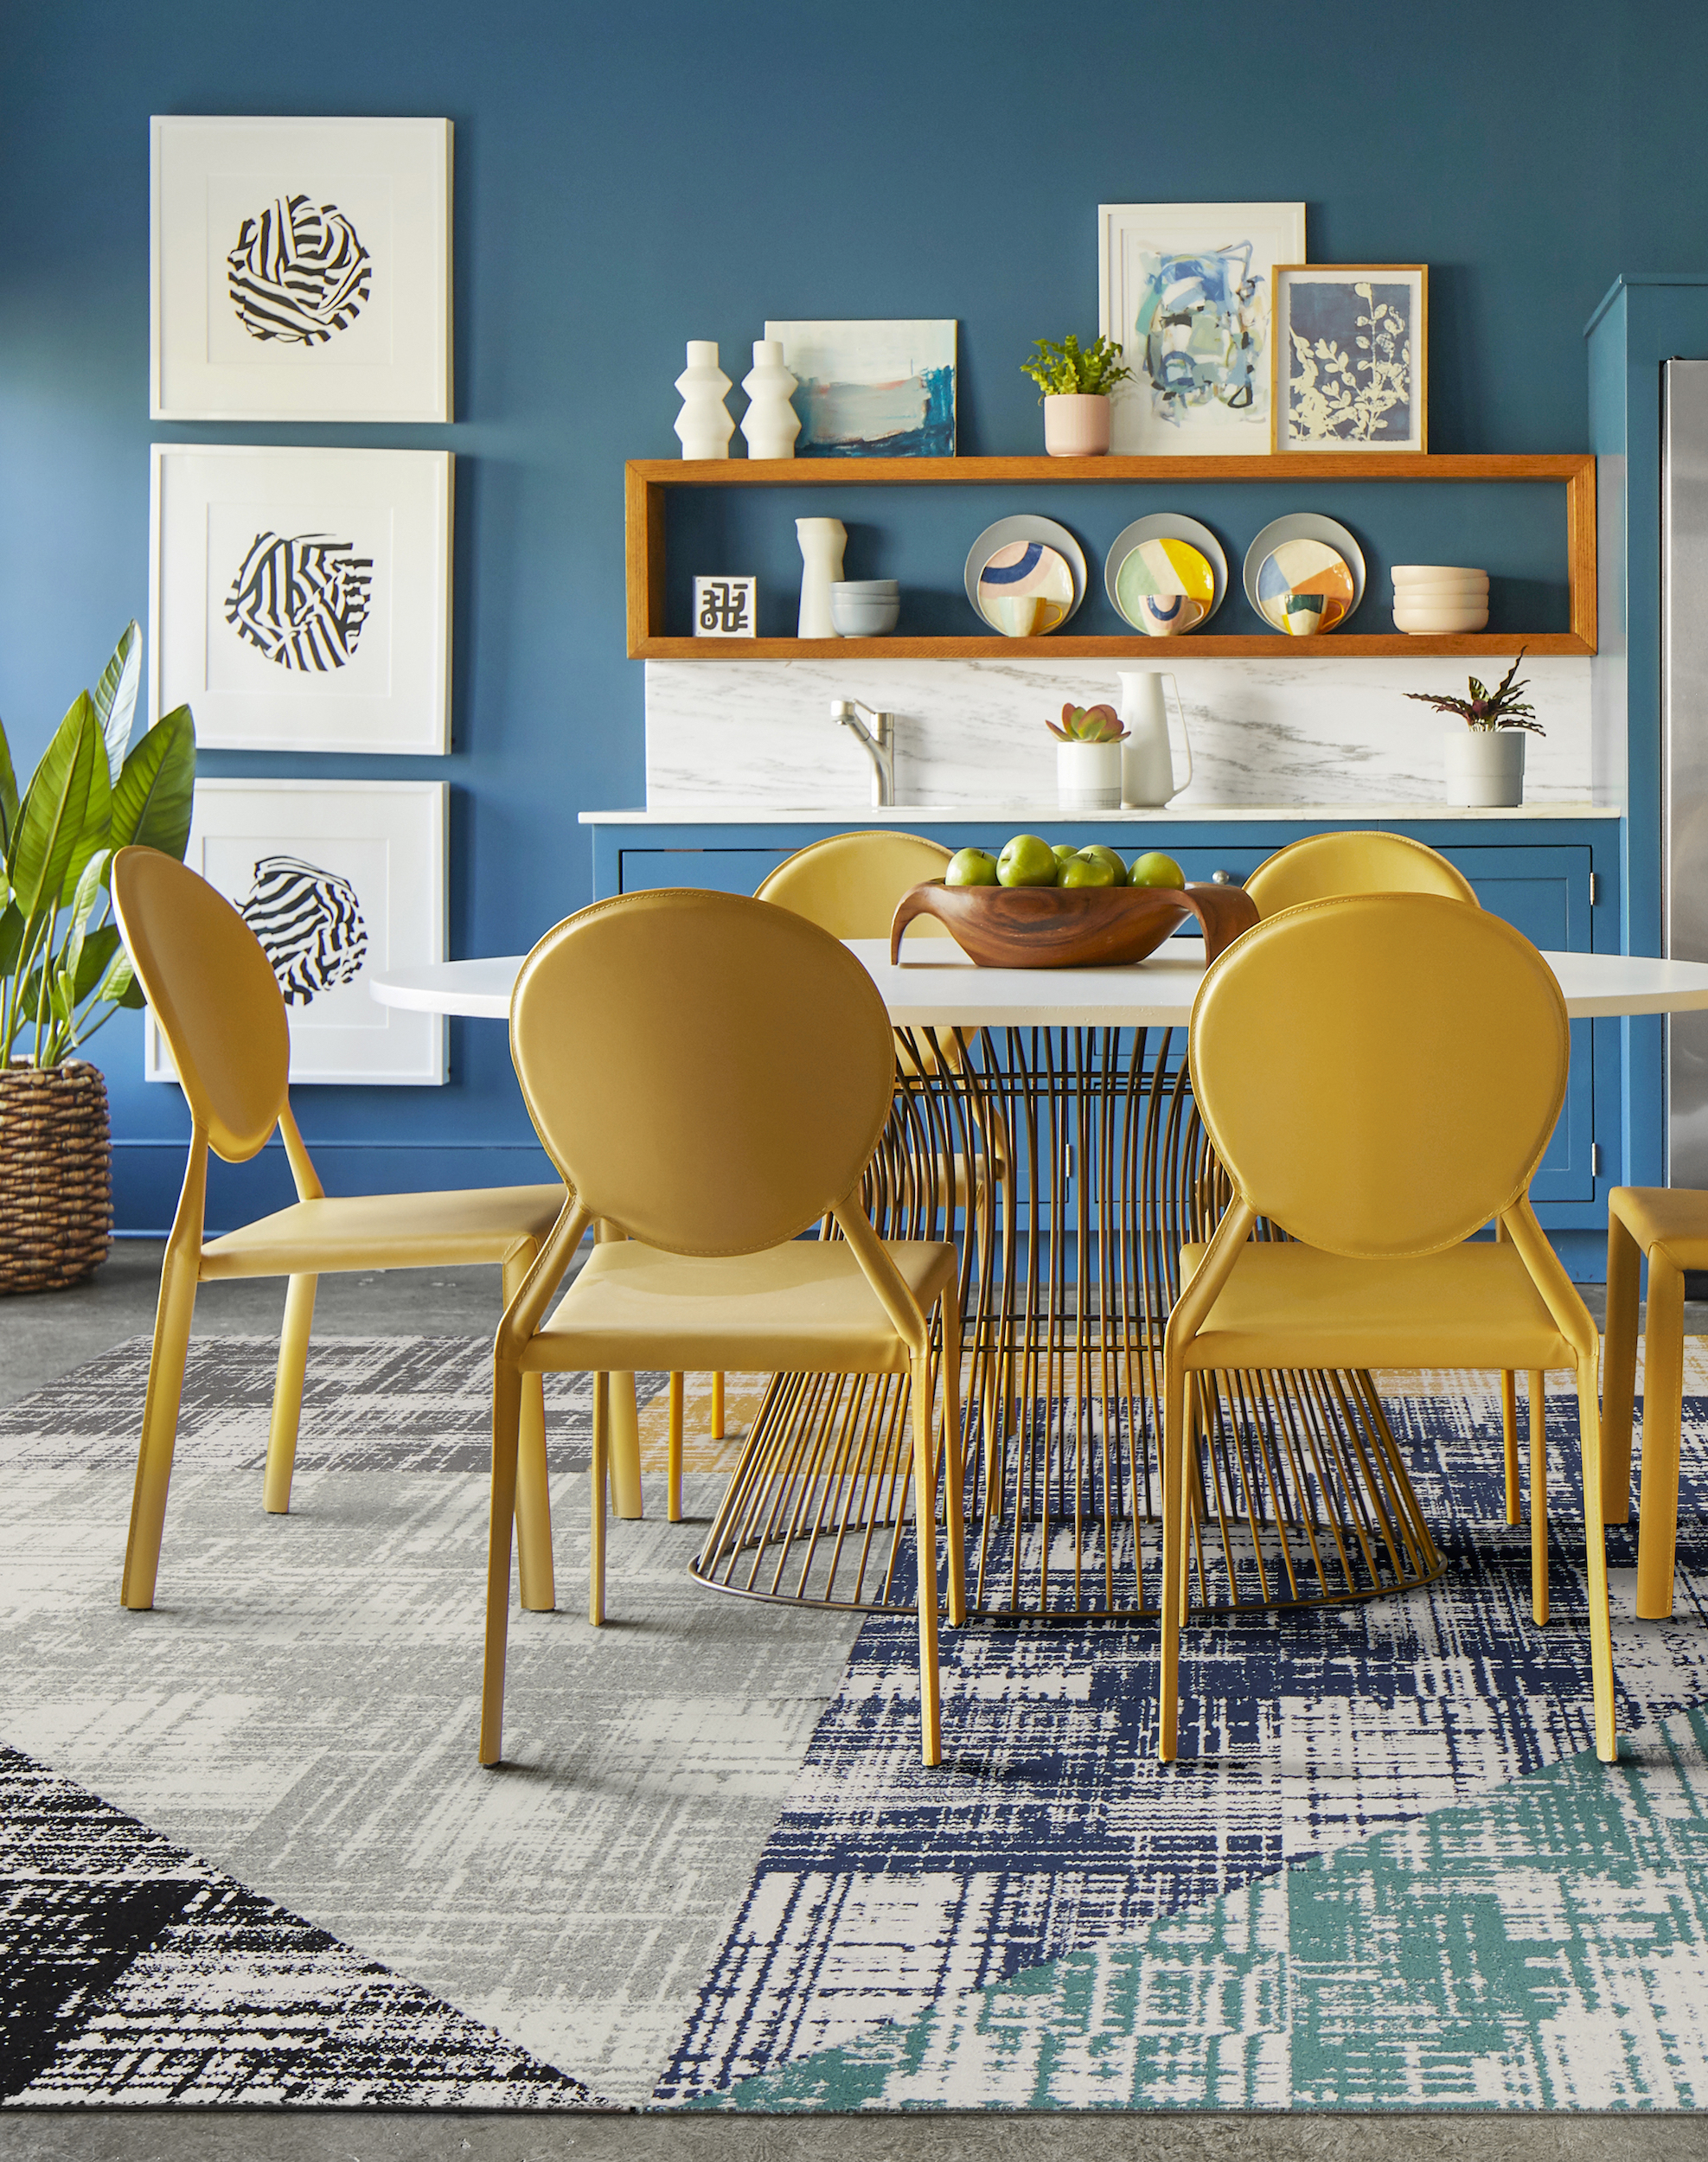 FLOR Dappled Daylight area rug in Black, Pigeon, Titanium, Marigold, Cobalt, and Teal, yellow chairs, and a metal dining table.